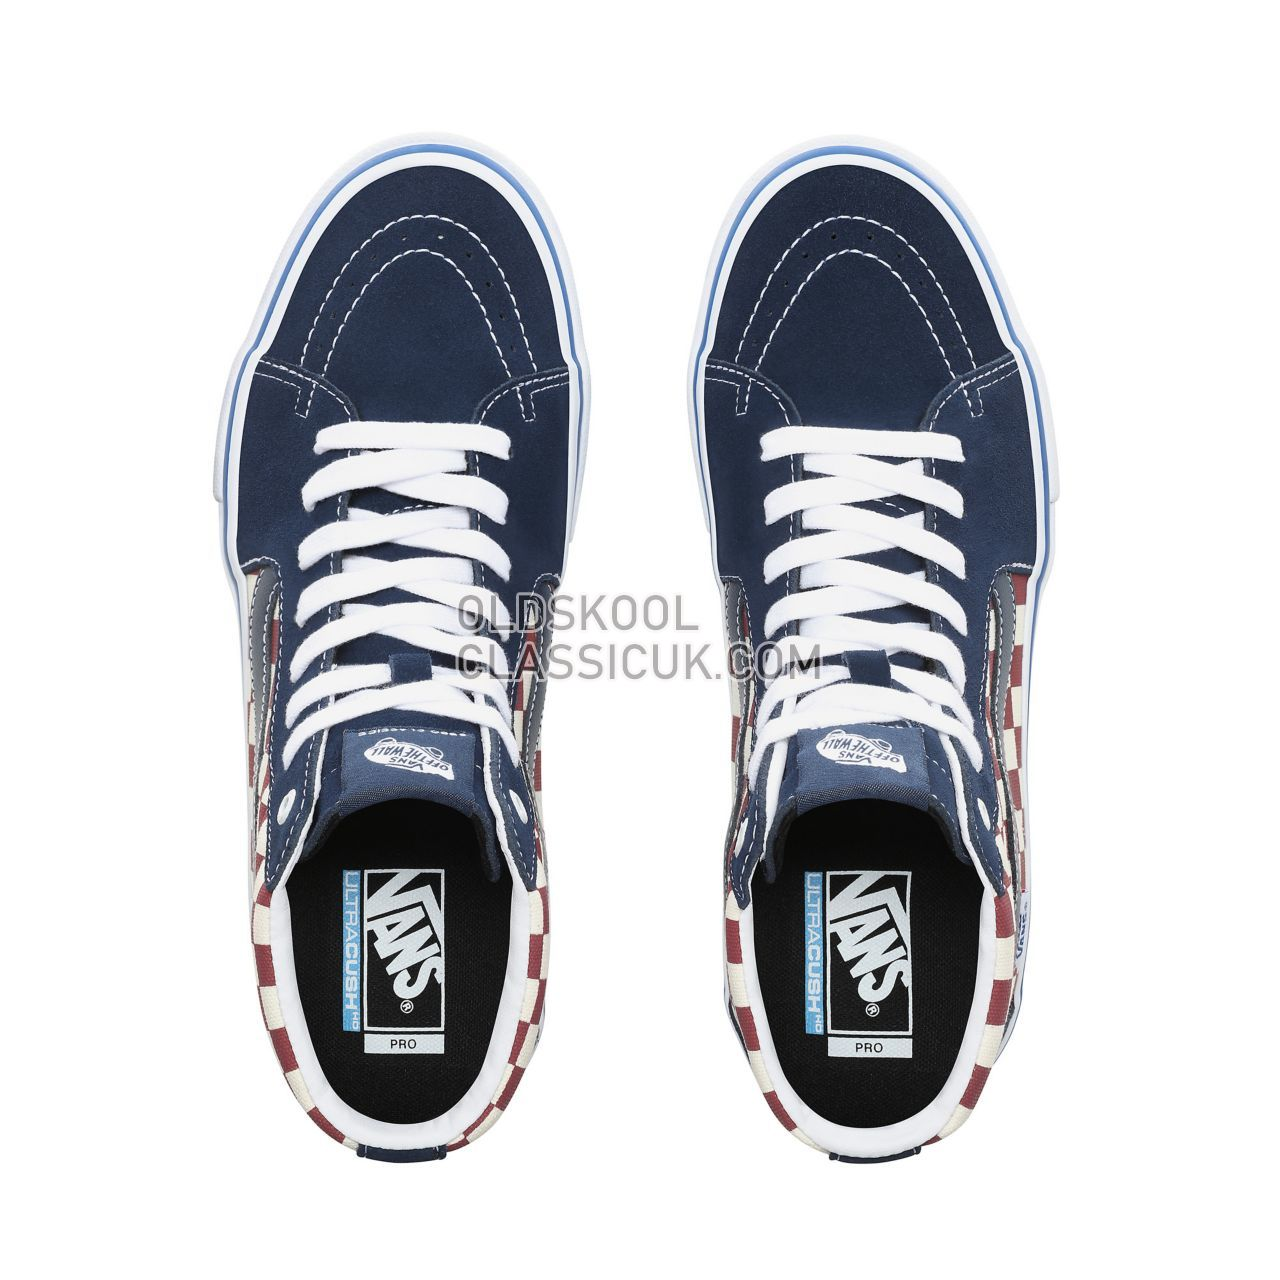 b09c2ee9b792 Vans Checker Sk8-Hi Pro Sneakers Mens (Checker) Dress Blues VN0A45JDVG8  Shoes - £65